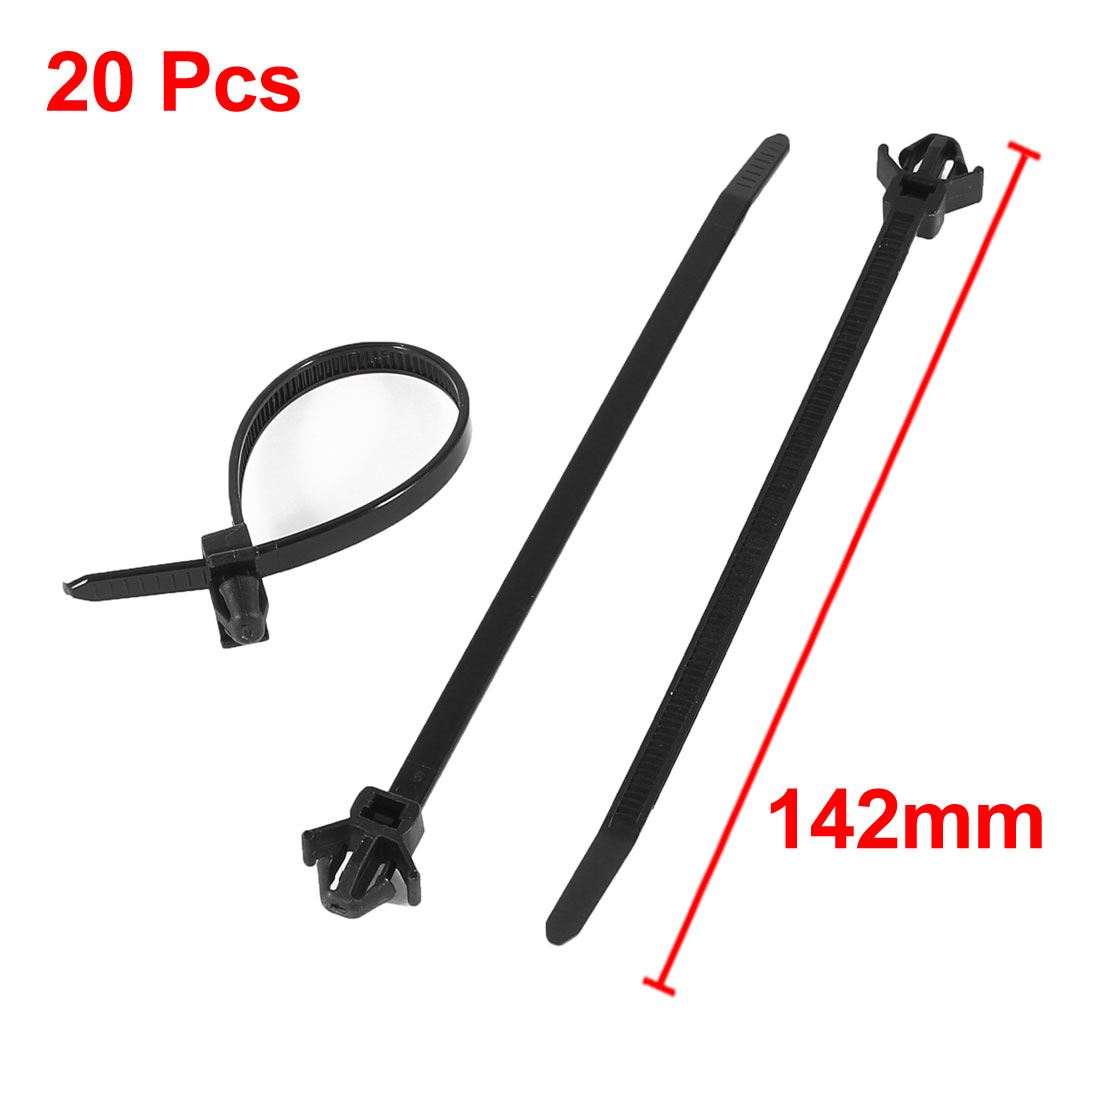 Popular 3m cable ties buy cheap 3m cable ties lots from china 3m cable - Flexible Cable Ties